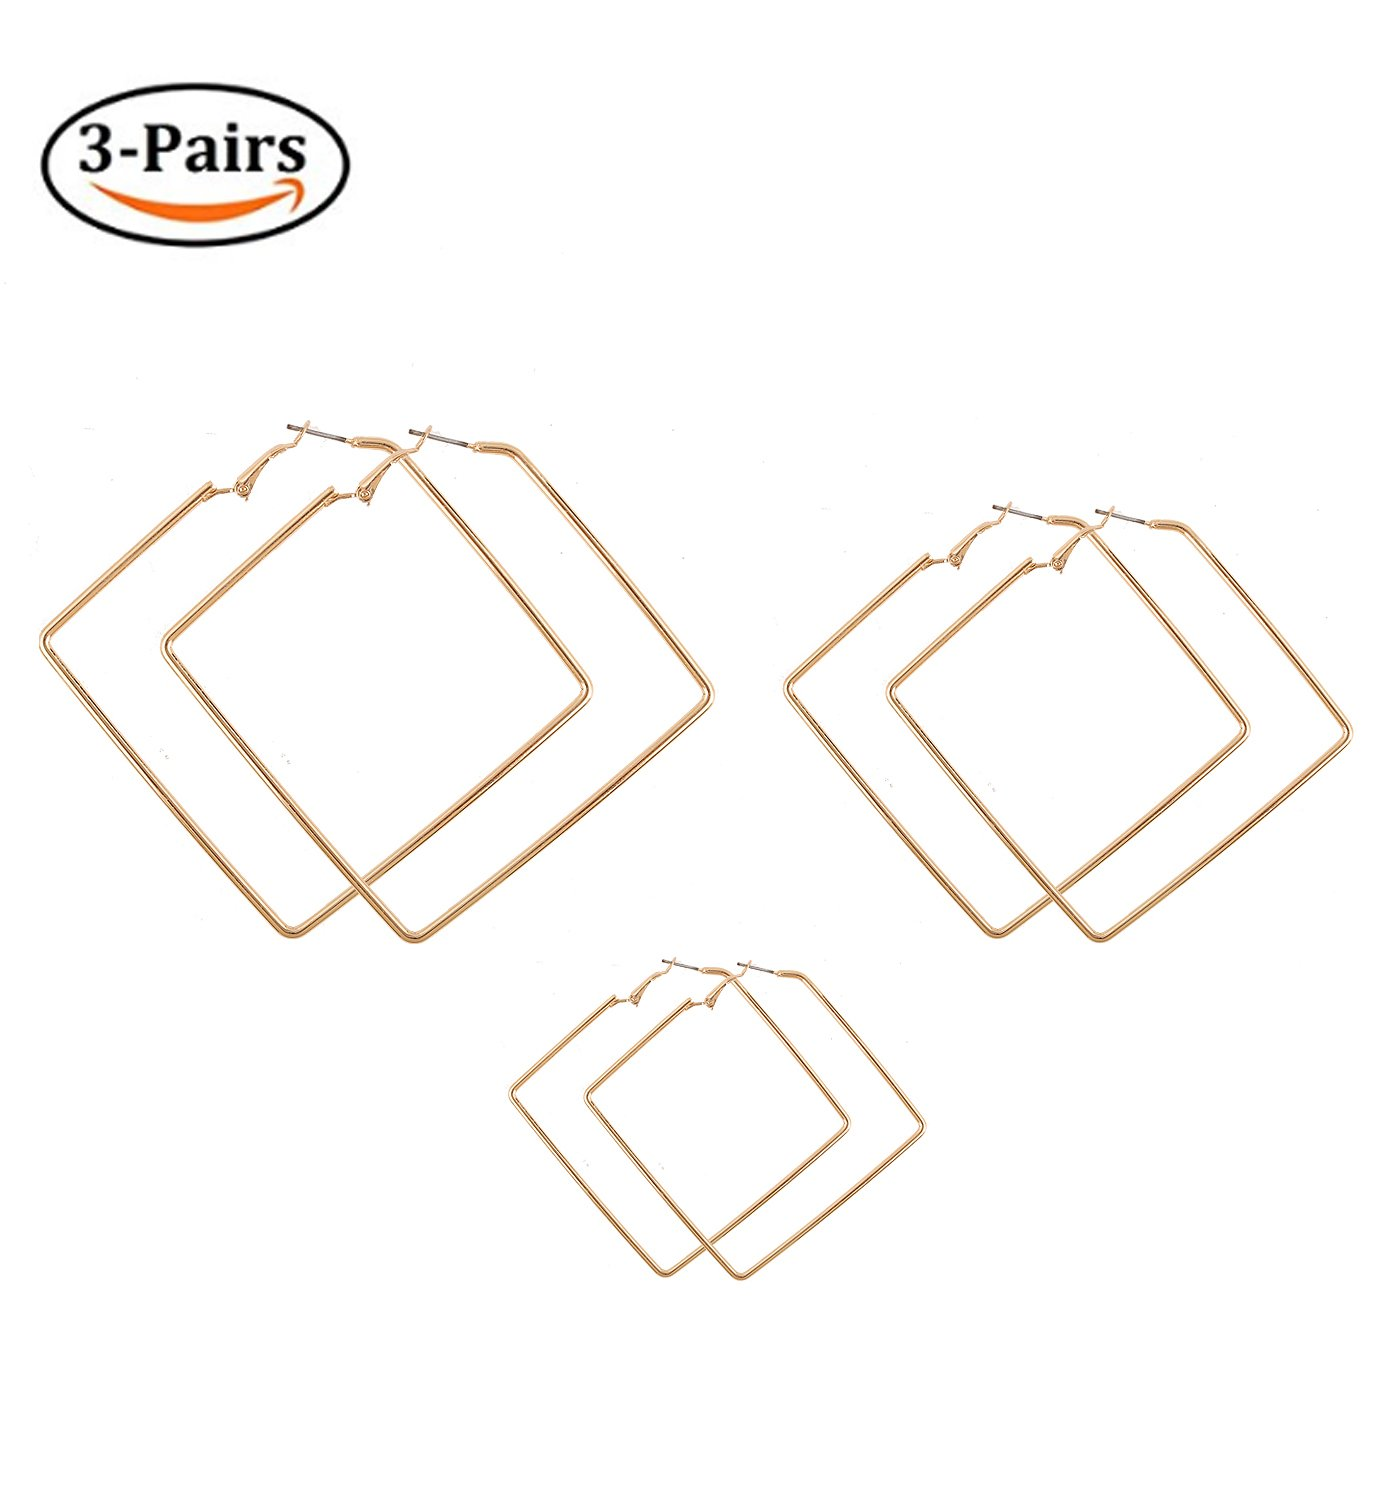 Square Hoop Earrings 3 Pairs Geometric Hoop Earrings Dangle Earring Set For Women Girls LPON B07D1H2JJZ_US